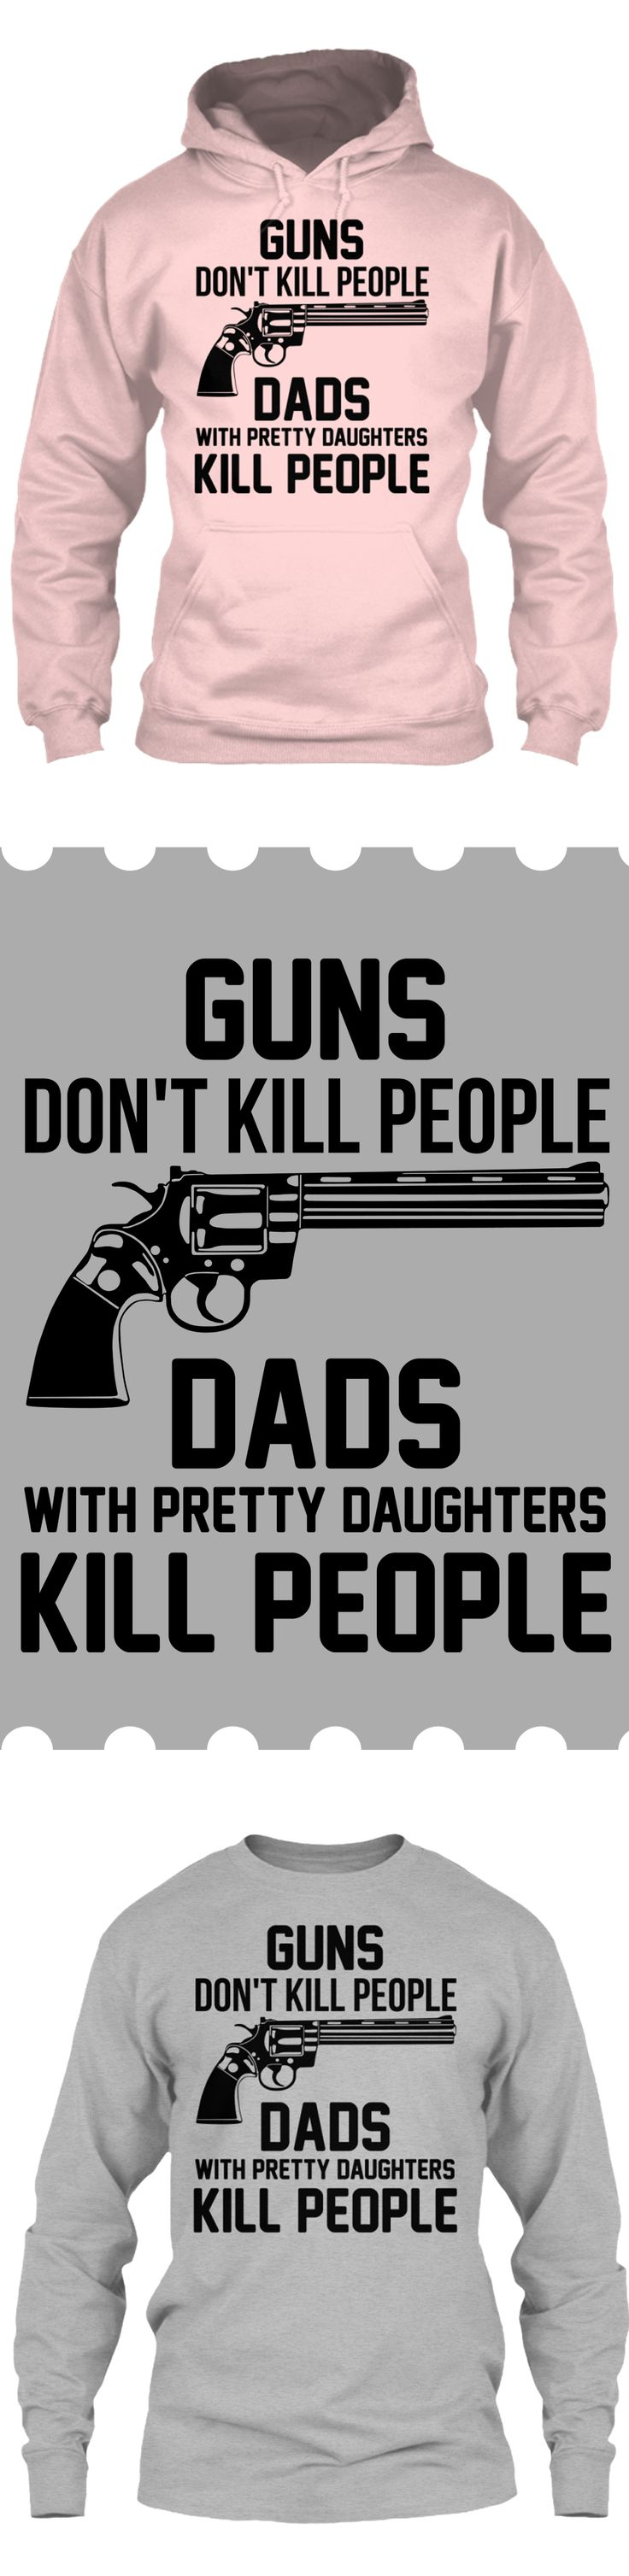 Guns Don't Kill People - Get this limited edition Long Sleeves and Hoodies just in time for the holidays! Click to buy now!